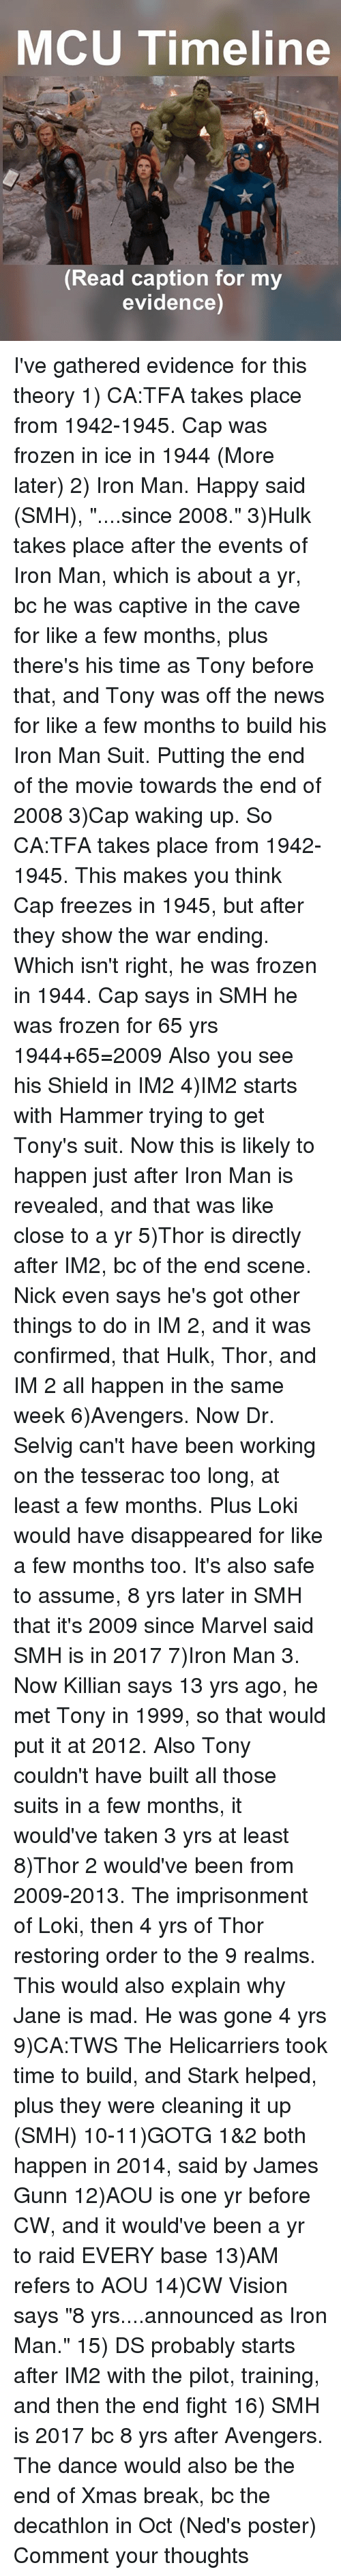 "taken 3: MCU Timeline  A,  Read caption for my  evidence) I've gathered evidence for this theory 1) CA:TFA takes place from 1942-1945. Cap was frozen in ice in 1944 (More later) 2) Iron Man. Happy said (SMH), ""....since 2008."" 3)Hulk takes place after the events of Iron Man, which is about a yr, bc he was captive in the cave for like a few months, plus there's his time as Tony before that, and Tony was off the news for like a few months to build his Iron Man Suit. Putting the end of the movie towards the end of 2008 3)Cap waking up. So CA:TFA takes place from 1942-1945. This makes you think Cap freezes in 1945, but after they show the war ending. Which isn't right, he was frozen in 1944. Cap says in SMH he was frozen for 65 yrs 1944+65=2009 Also you see his Shield in IM2 4)IM2 starts with Hammer trying to get Tony's suit. Now this is likely to happen just after Iron Man is revealed, and that was like close to a yr 5)Thor is directly after IM2, bc of the end scene. Nick even says he's got other things to do in IM 2, and it was confirmed, that Hulk, Thor, and IM 2 all happen in the same week 6)Avengers. Now Dr. Selvig can't have been working on the tesserac too long, at least a few months. Plus Loki would have disappeared for like a few months too. It's also safe to assume, 8 yrs later in SMH that it's 2009 since Marvel said SMH is in 2017 7)Iron Man 3. Now Killian says 13 yrs ago, he met Tony in 1999, so that would put it at 2012. Also Tony couldn't have built all those suits in a few months, it would've taken 3 yrs at least 8)Thor 2 would've been from 2009-2013. The imprisonment of Loki, then 4 yrs of Thor restoring order to the 9 realms. This would also explain why Jane is mad. He was gone 4 yrs 9)CA:TWS The Helicarriers took time to build, and Stark helped, plus they were cleaning it up (SMH) 10-11)GOTG 1&2 both happen in 2014, said by James Gunn 12)AOU is one yr before CW, and it would've been a yr to raid EVERY base 13)AM refers to AOU 14)CW Vision says ""8 yrs....announced as Iron Man."" 15) DS probably starts after IM2 with the pilot, training, and then the end fight 16) SMH is 2017 bc 8 yrs after Avengers. The dance would also be the end of Xmas break, bc the decathlon in Oct (Ned's poster) Comment your thoughts"